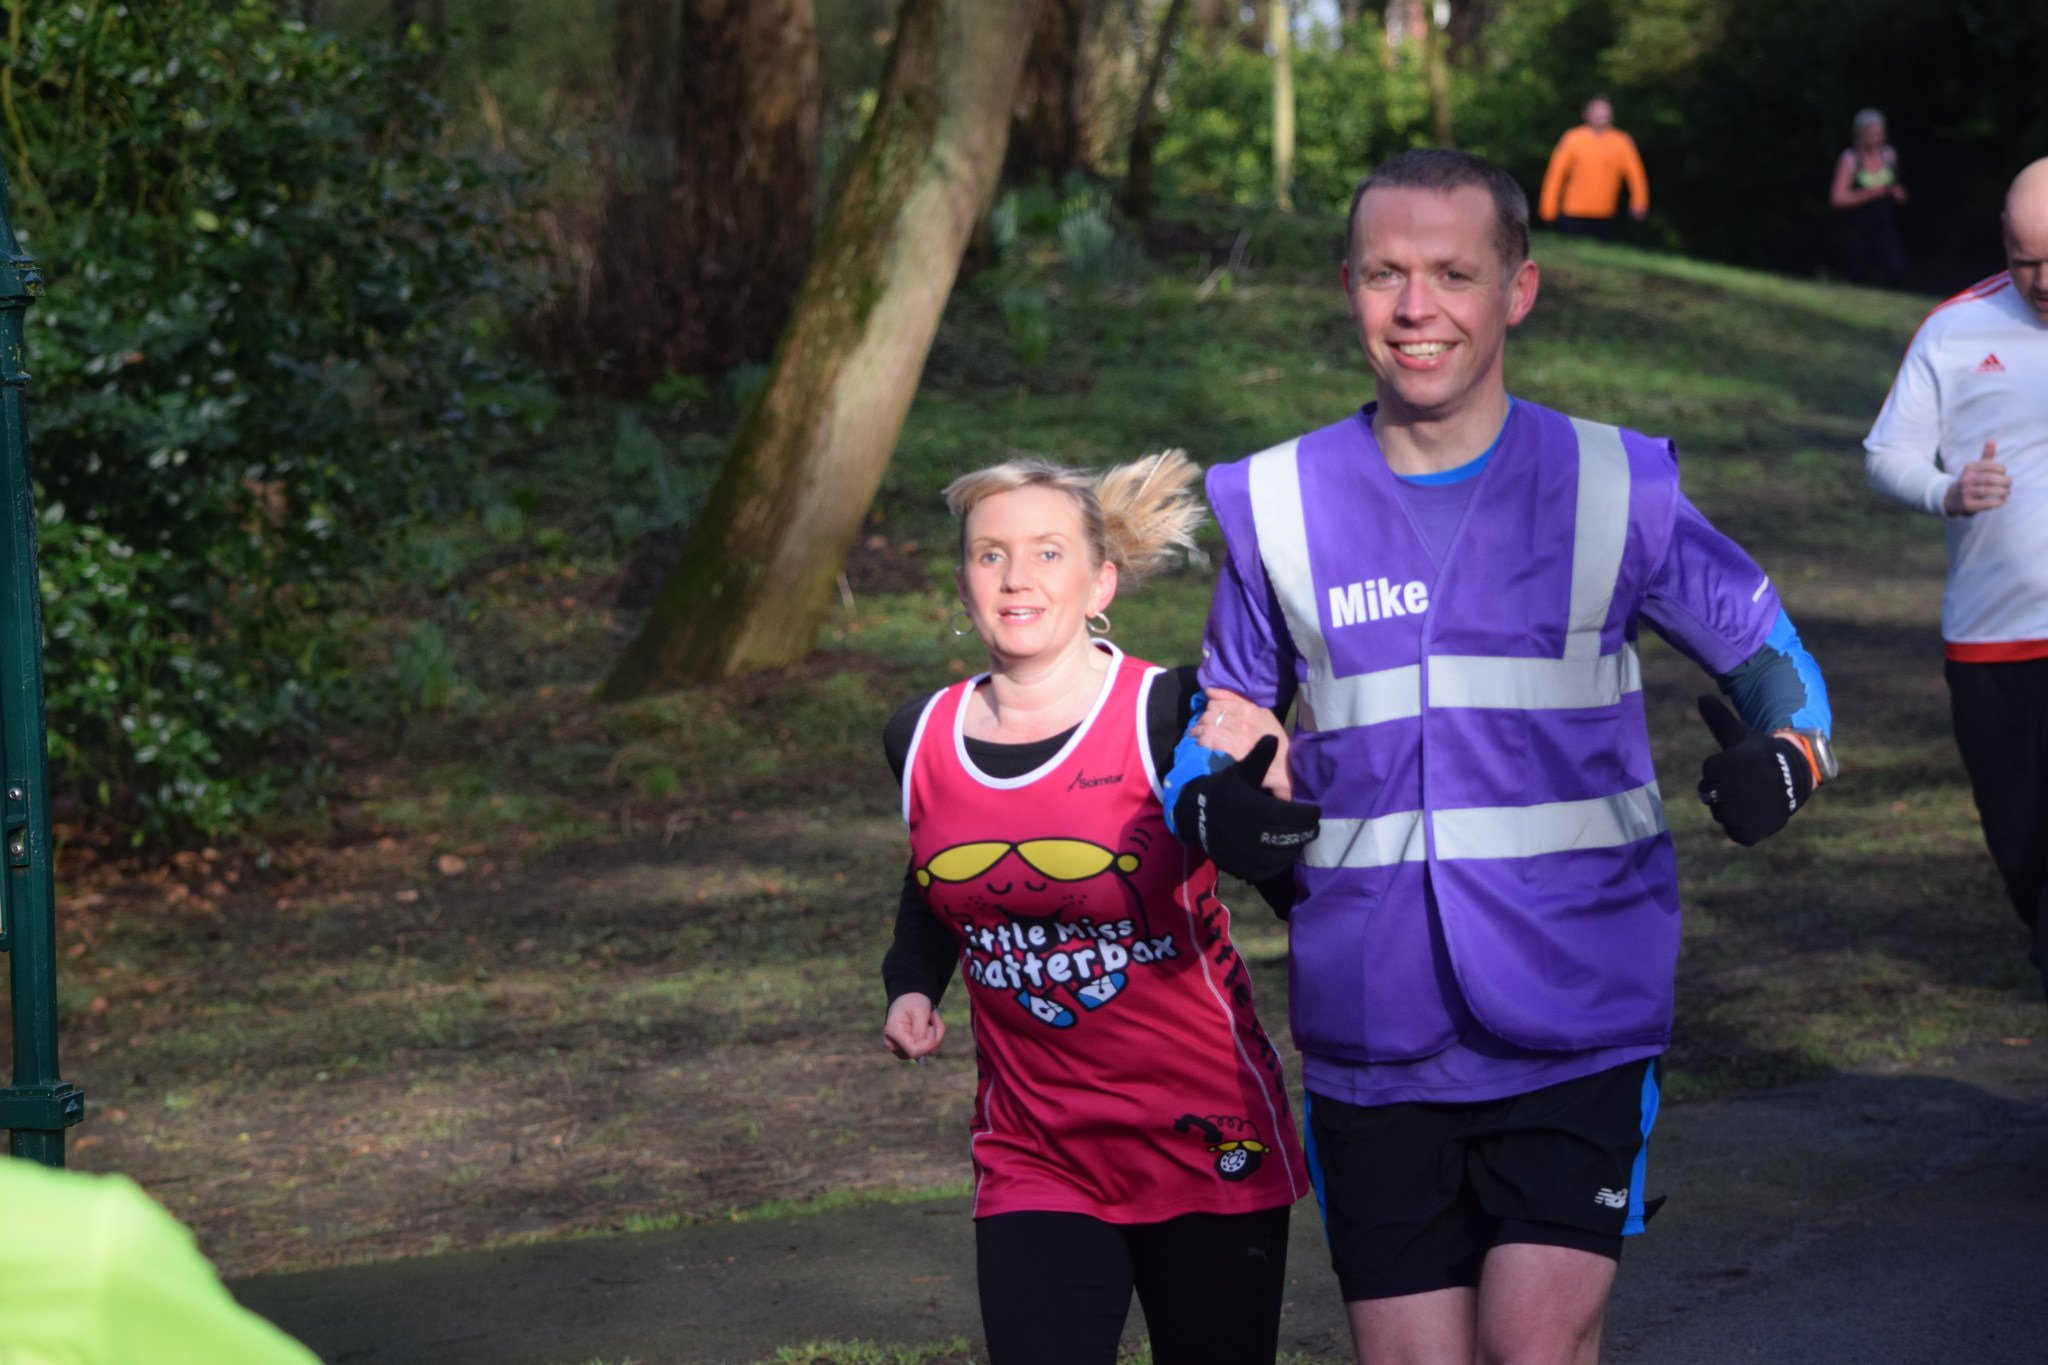 Kelly and Mike (guide) on a parkrun in Southport